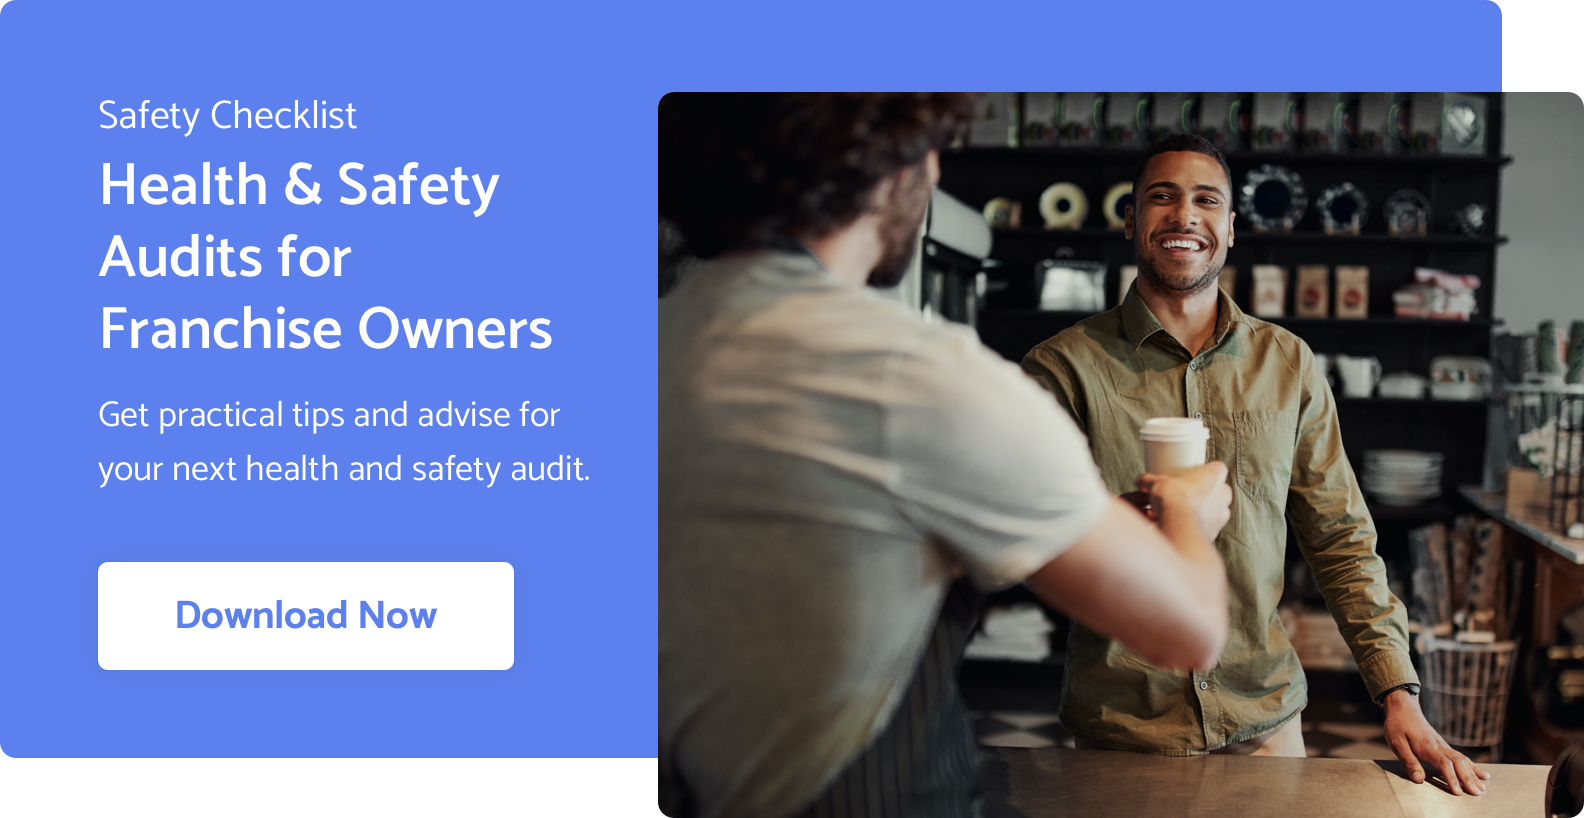 Health & Safety Audits for Franchise Owners